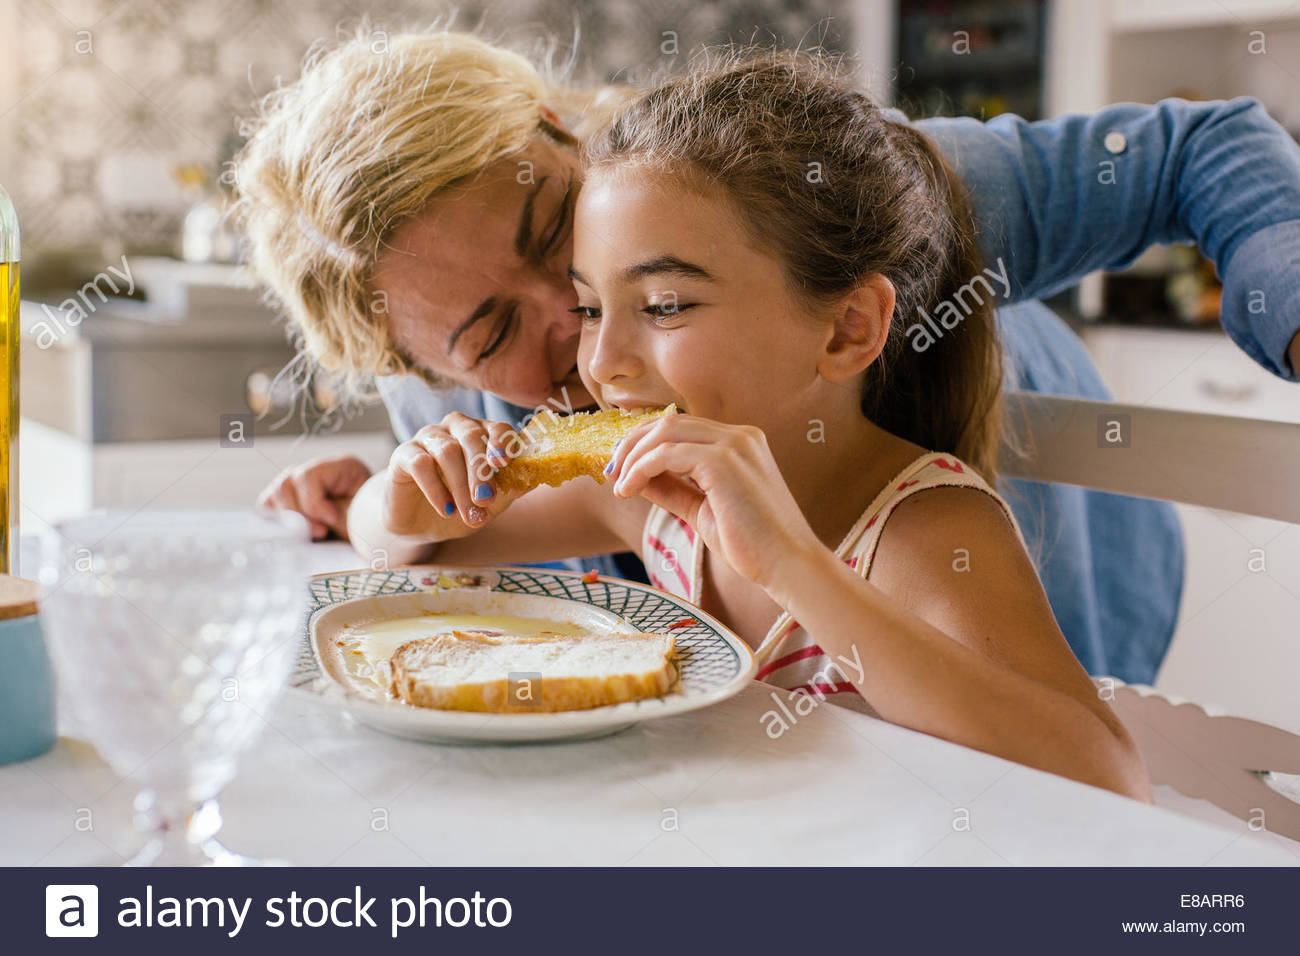 Girl eating toast avec grand-mère Photo Stock